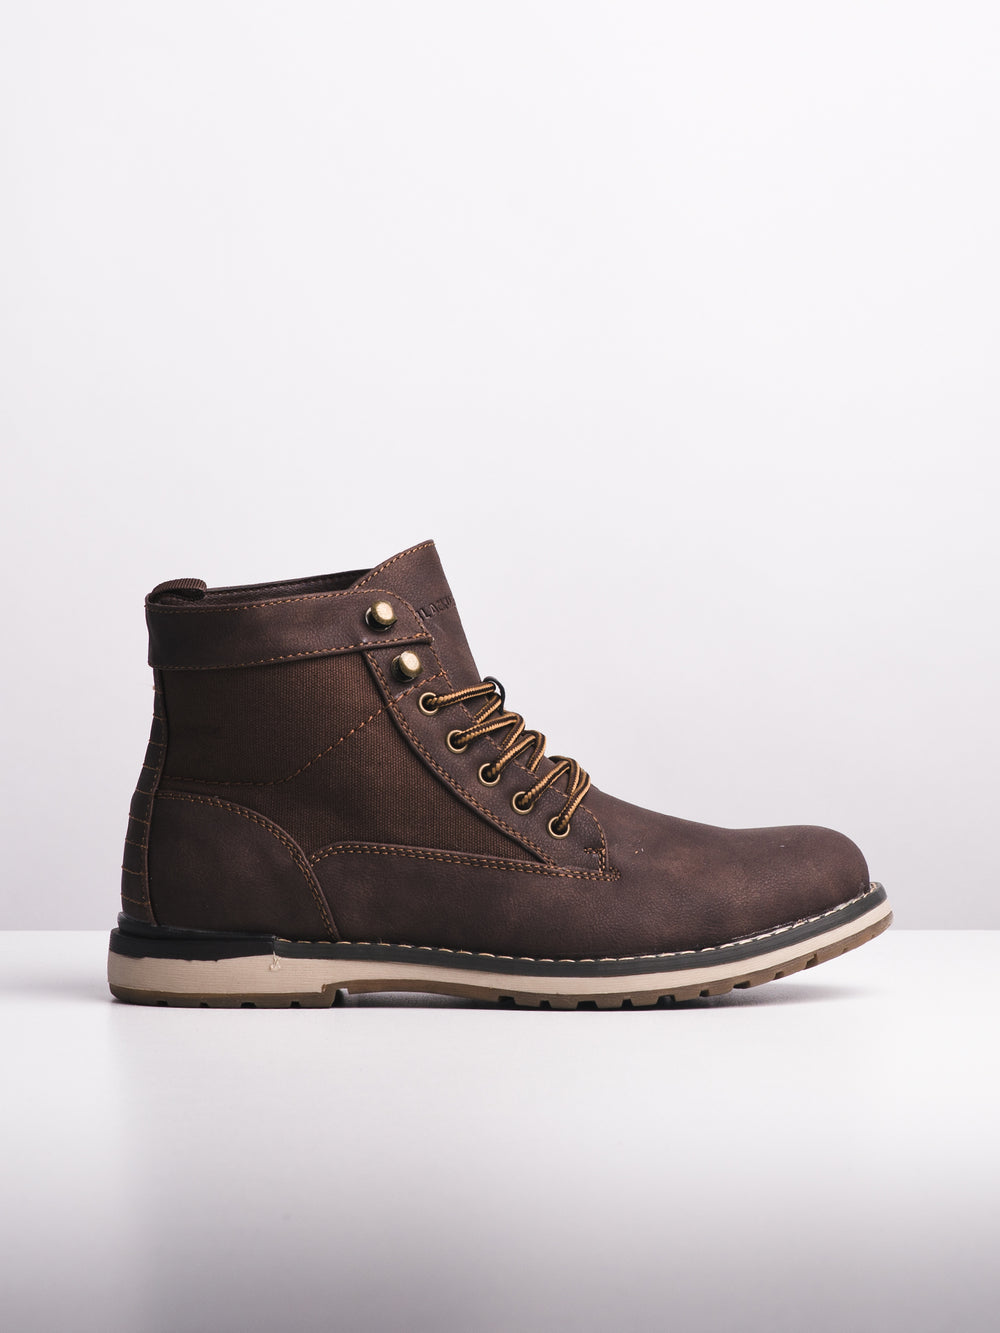 MENS NOAH - BROWN-D4